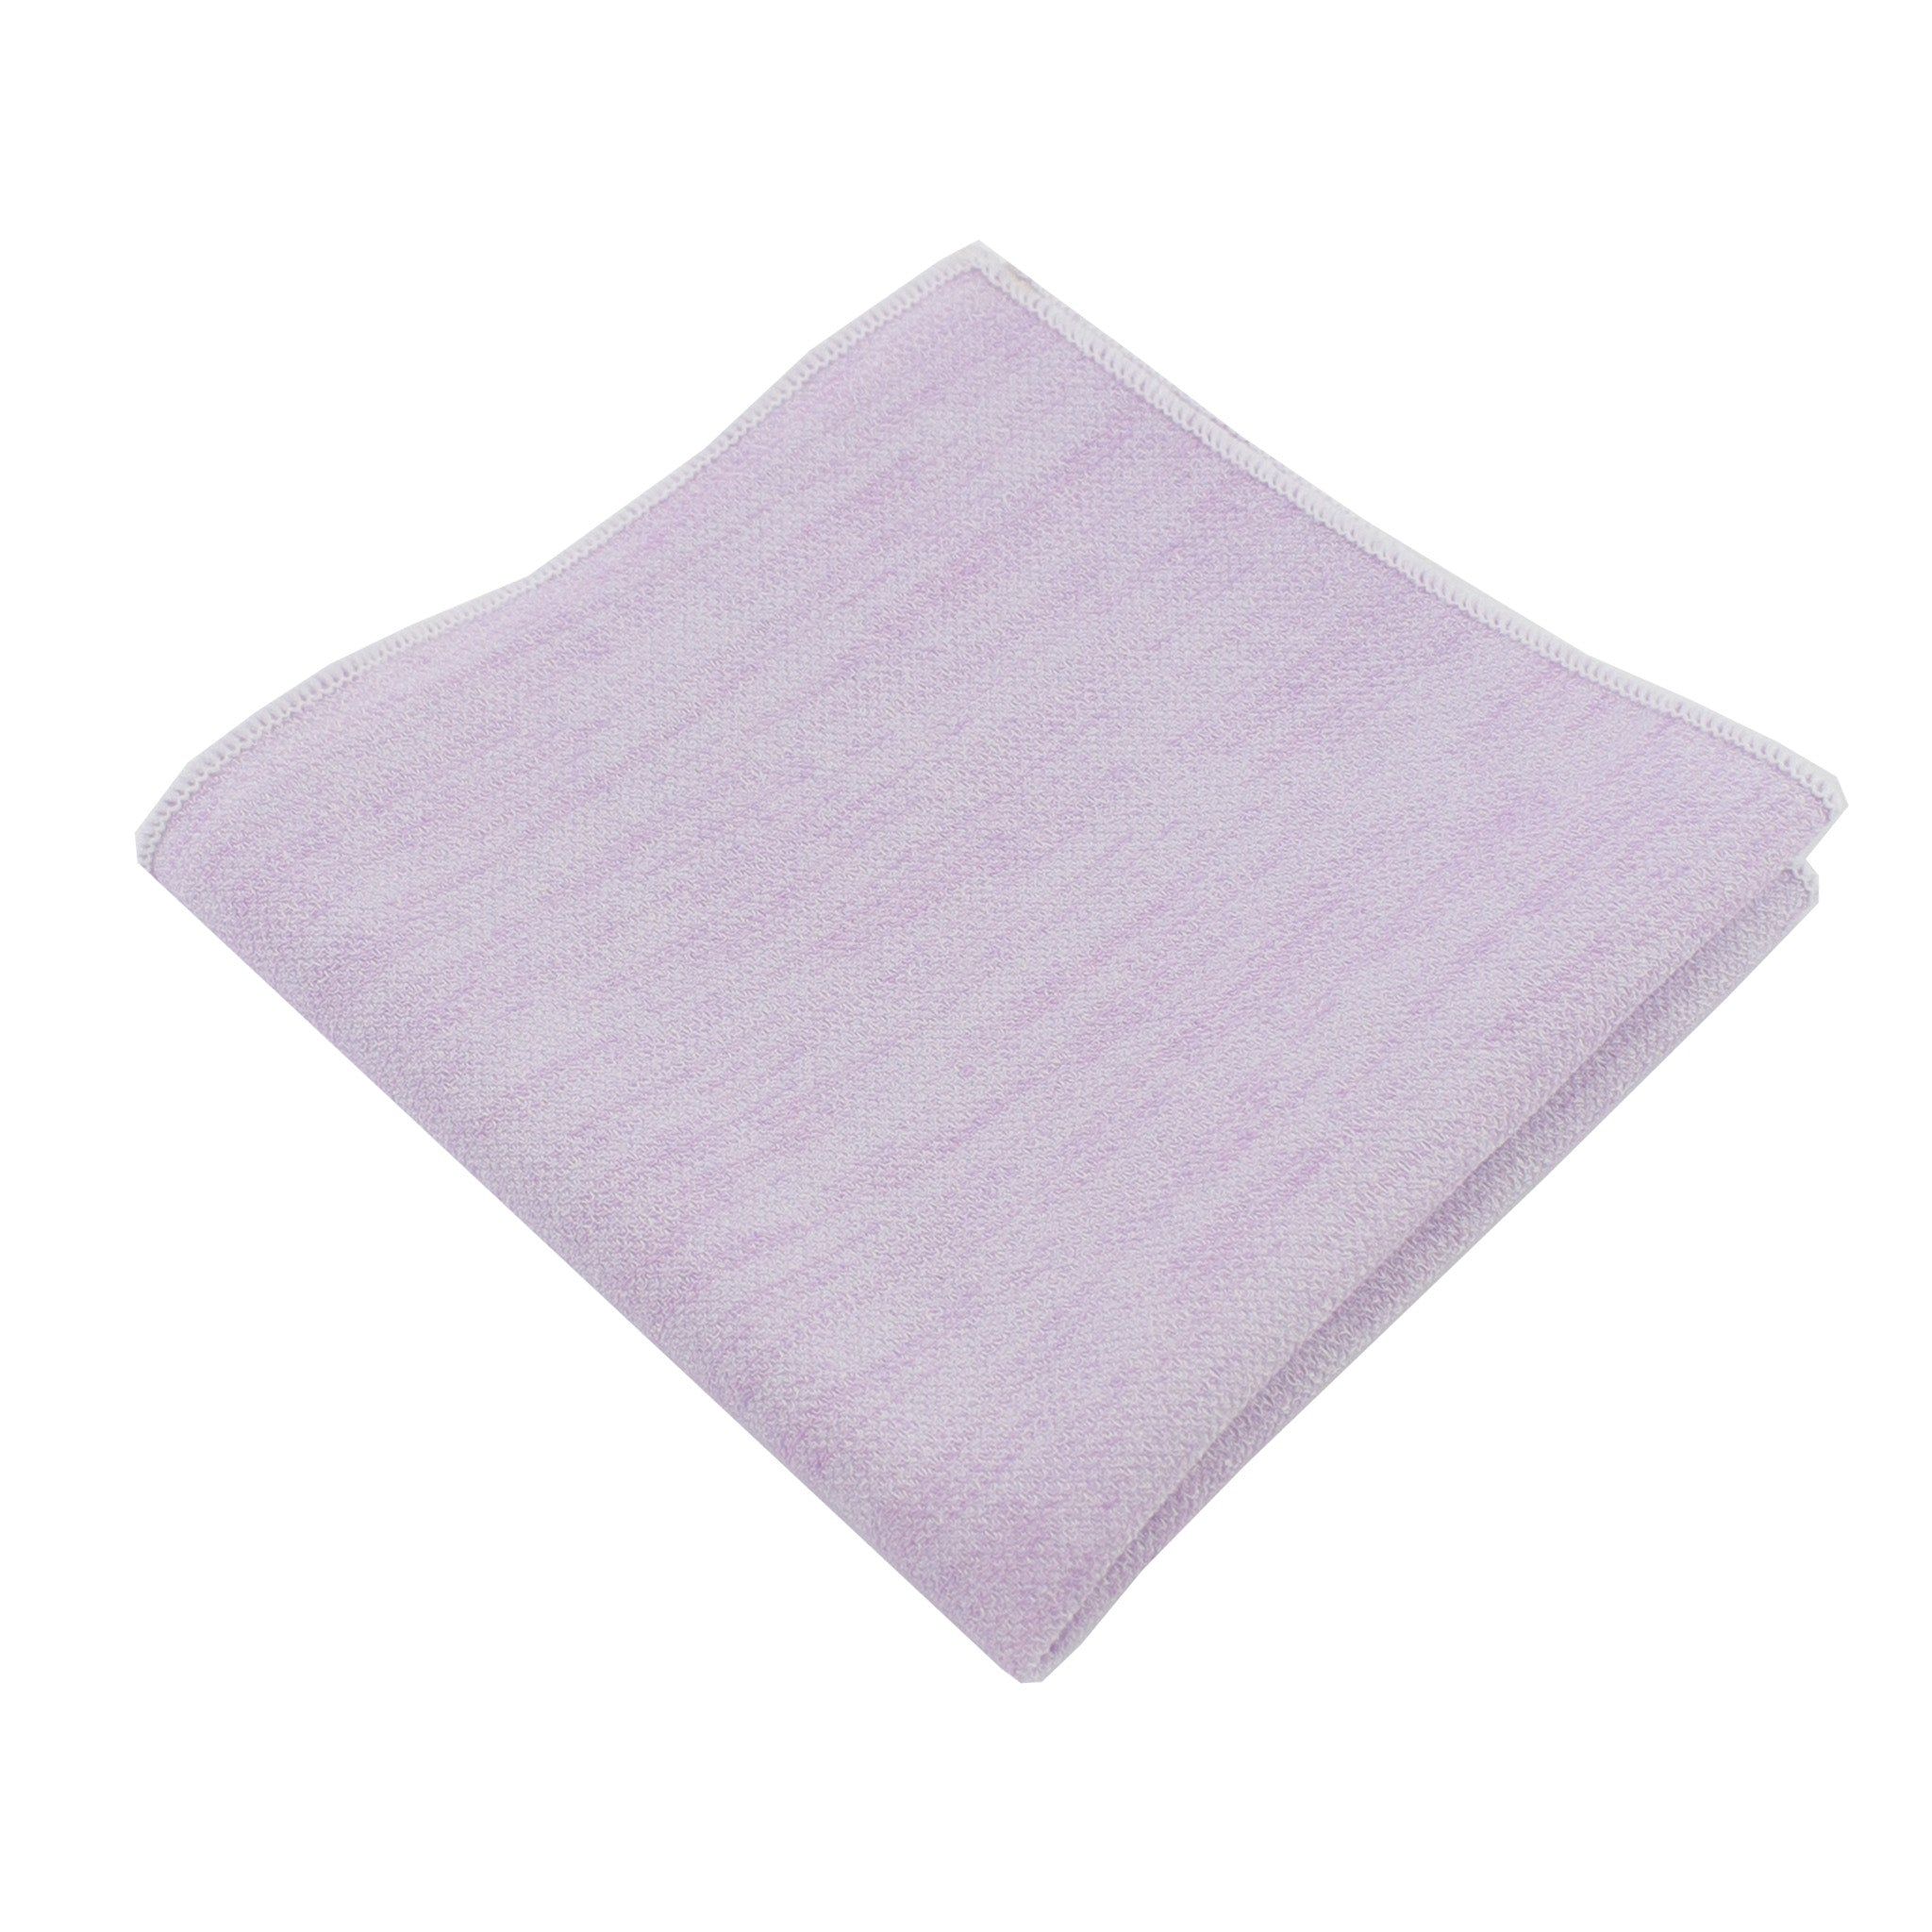 Lavender Cloud Pocket Square from DIBI